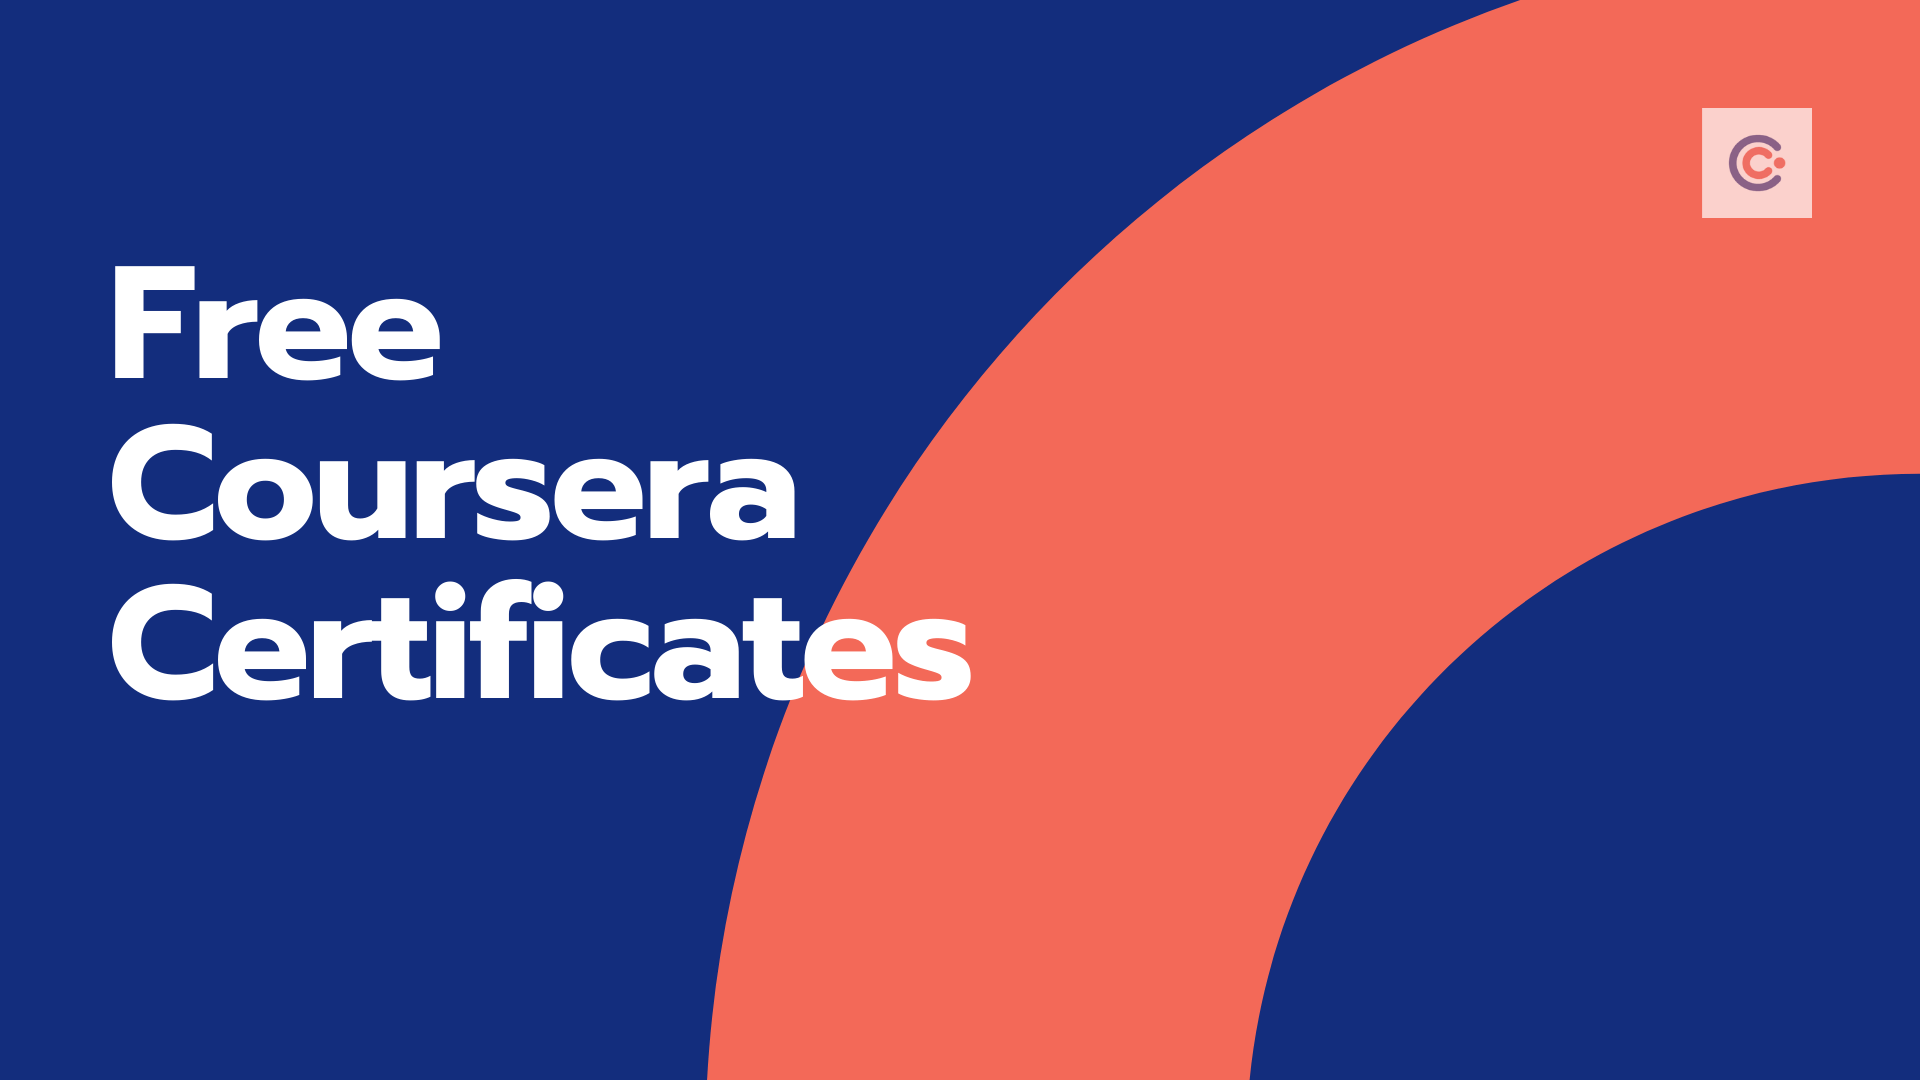 100 Free Coursera Certificate Courses